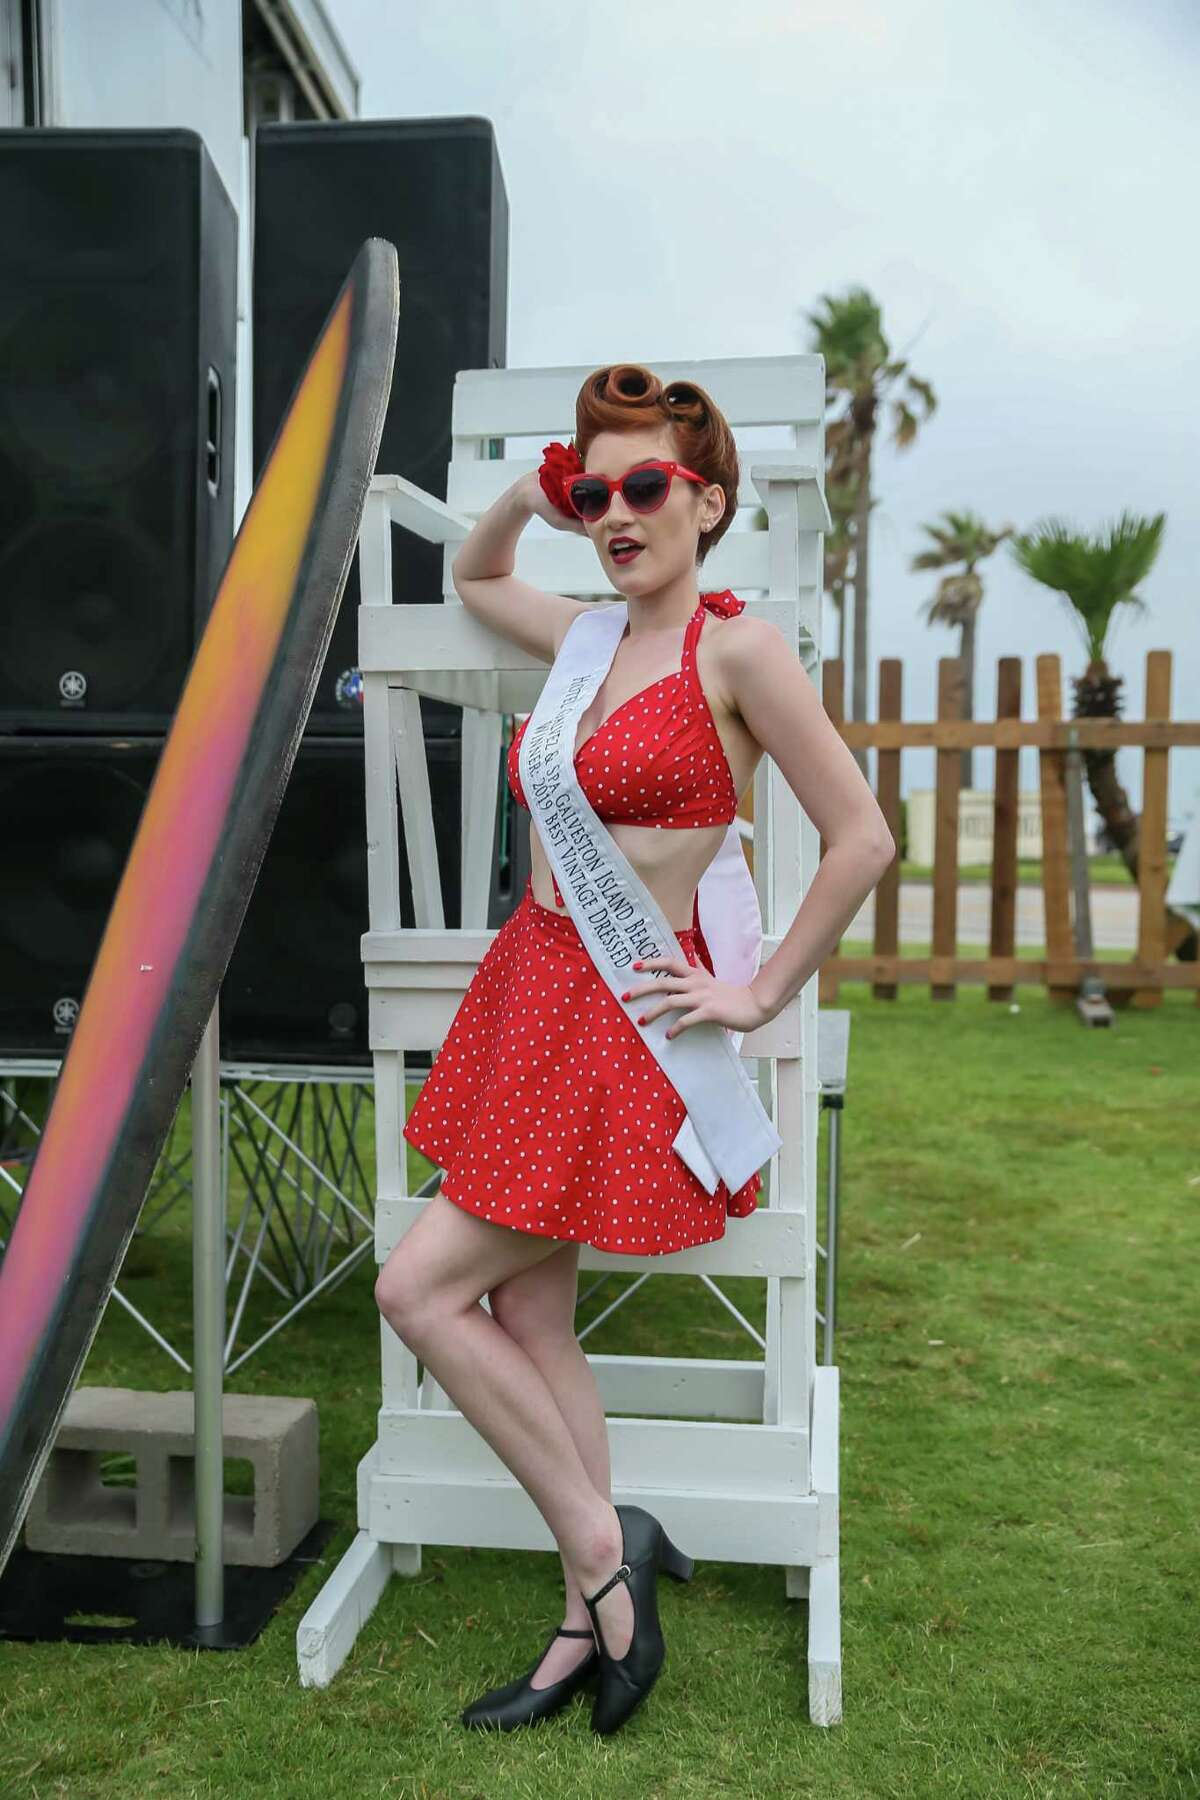 Stephanie Rivera, winner of the 2019 Best Vintage Dressed competition during the Galveston Island Beach Revue, May 18, 2019.